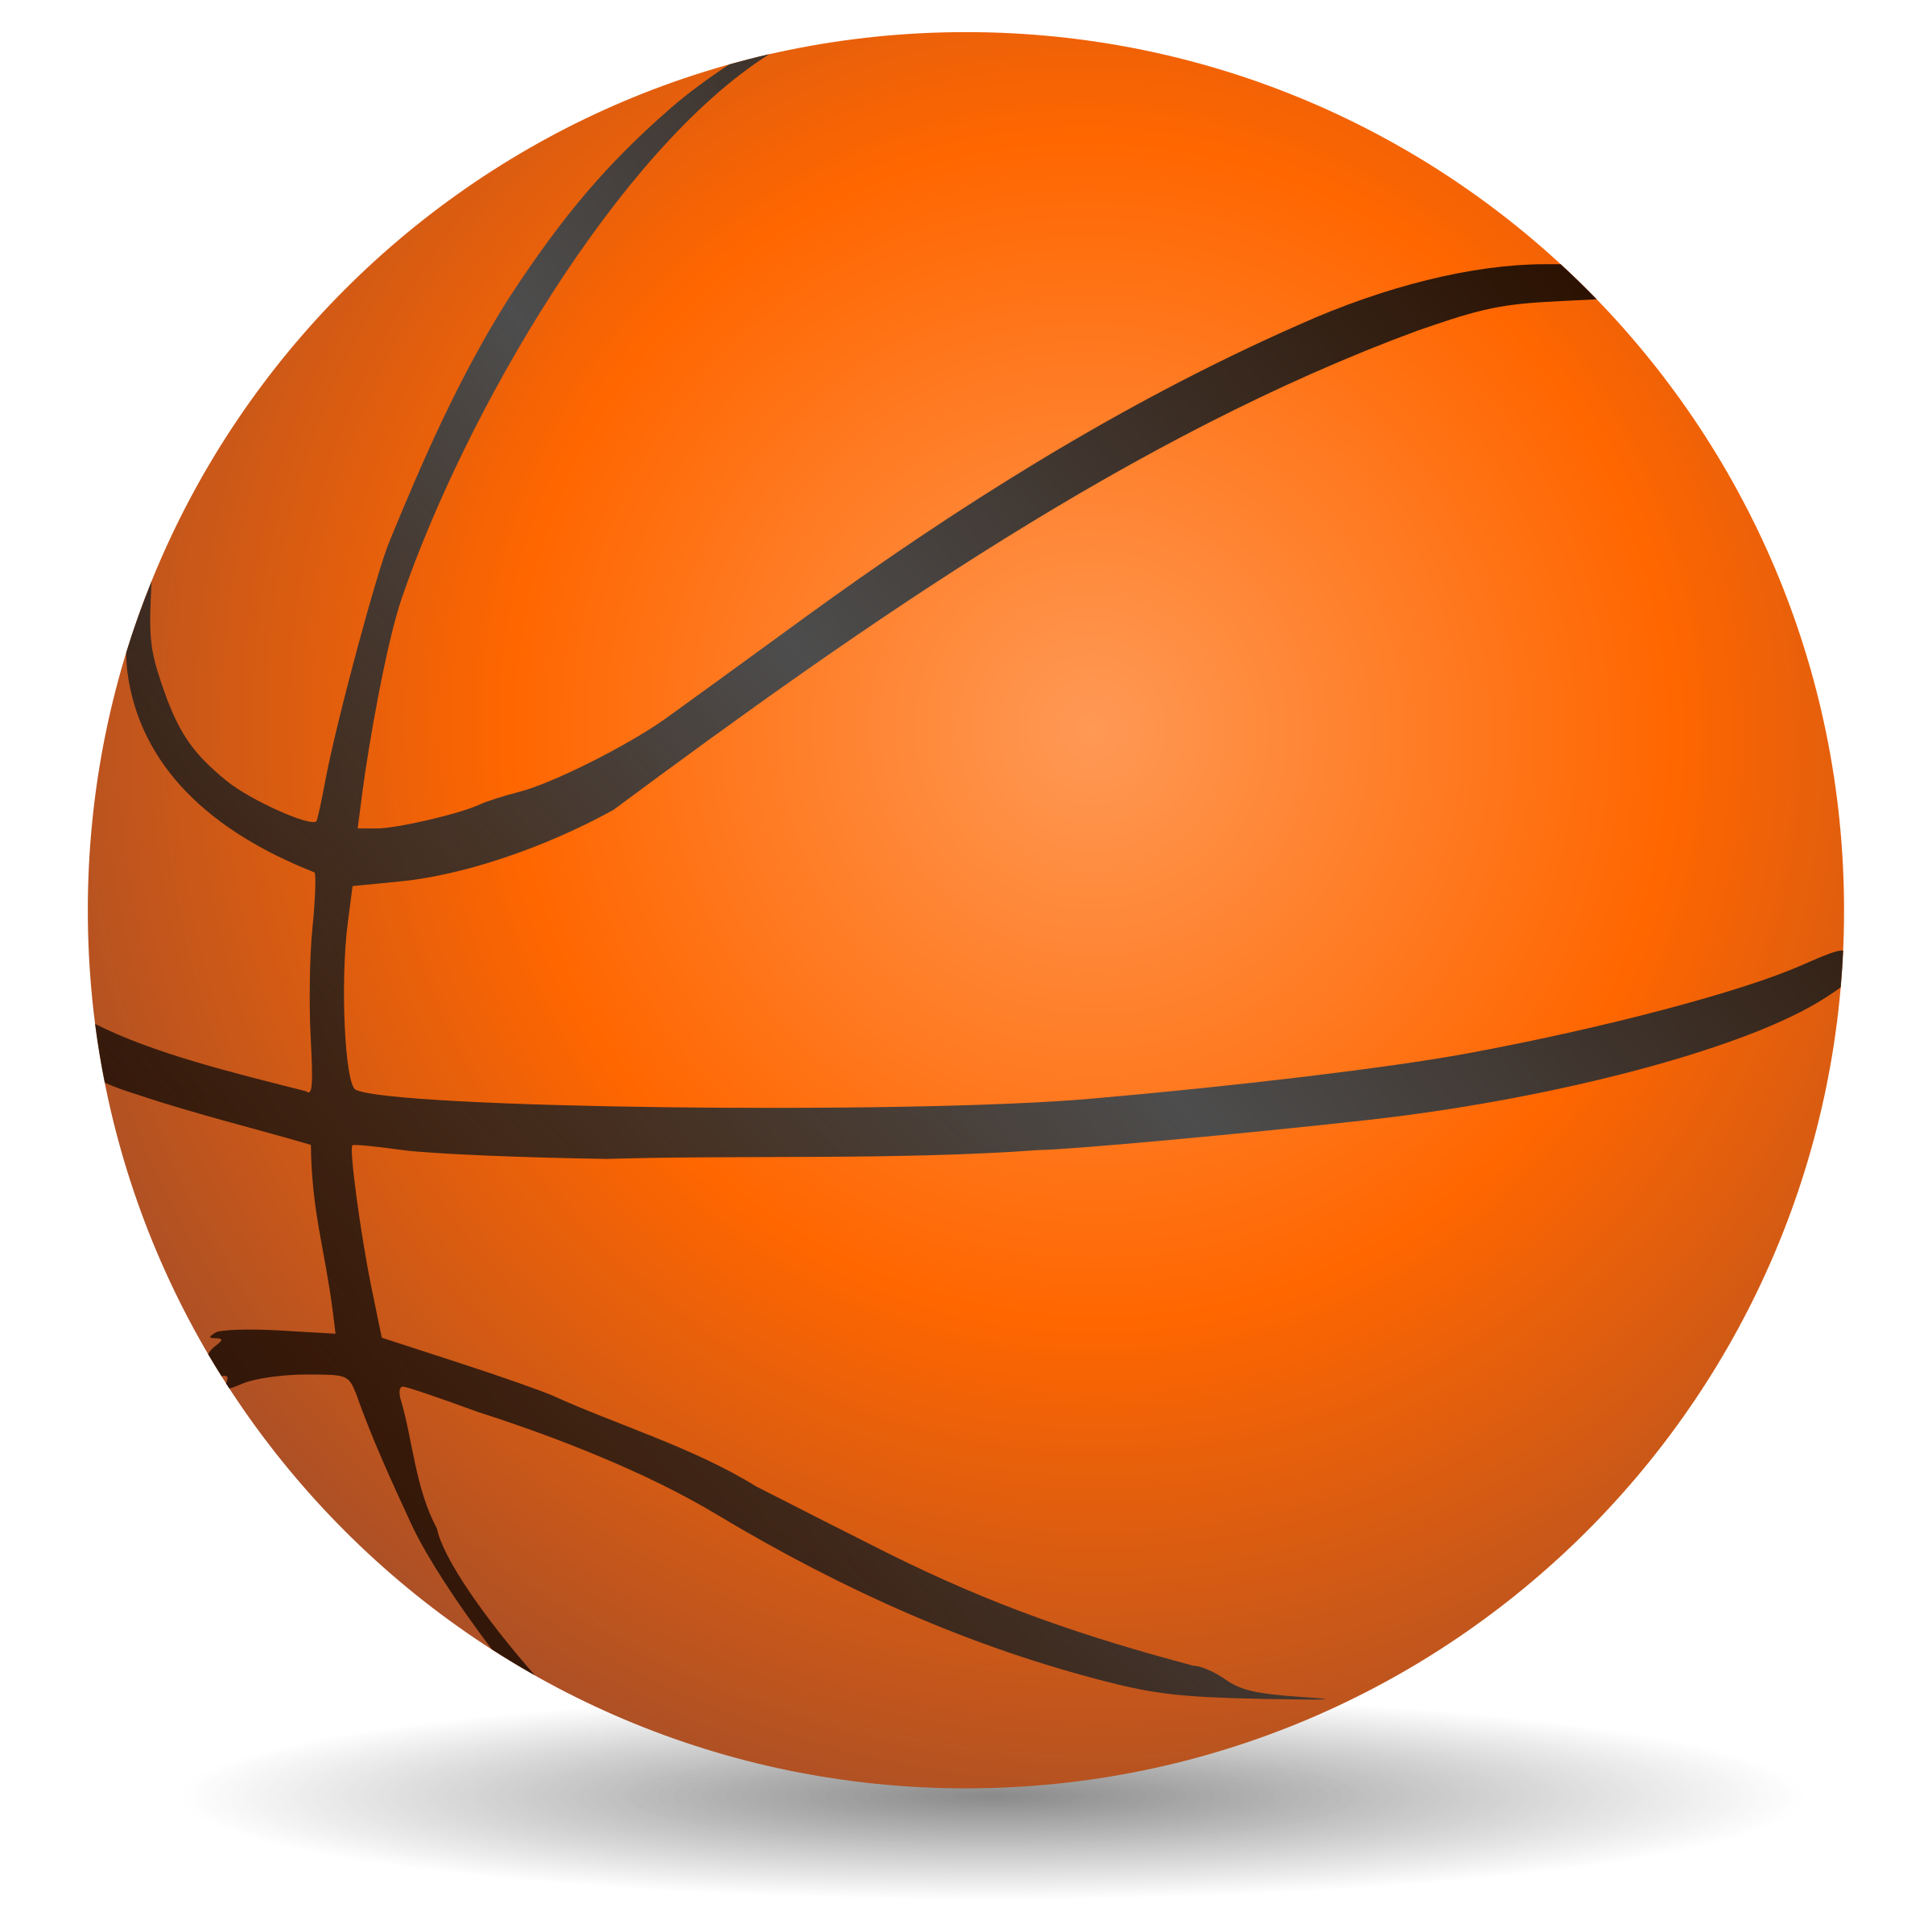 Images basketball clipart picture library download Clipart - Basketball picture library download